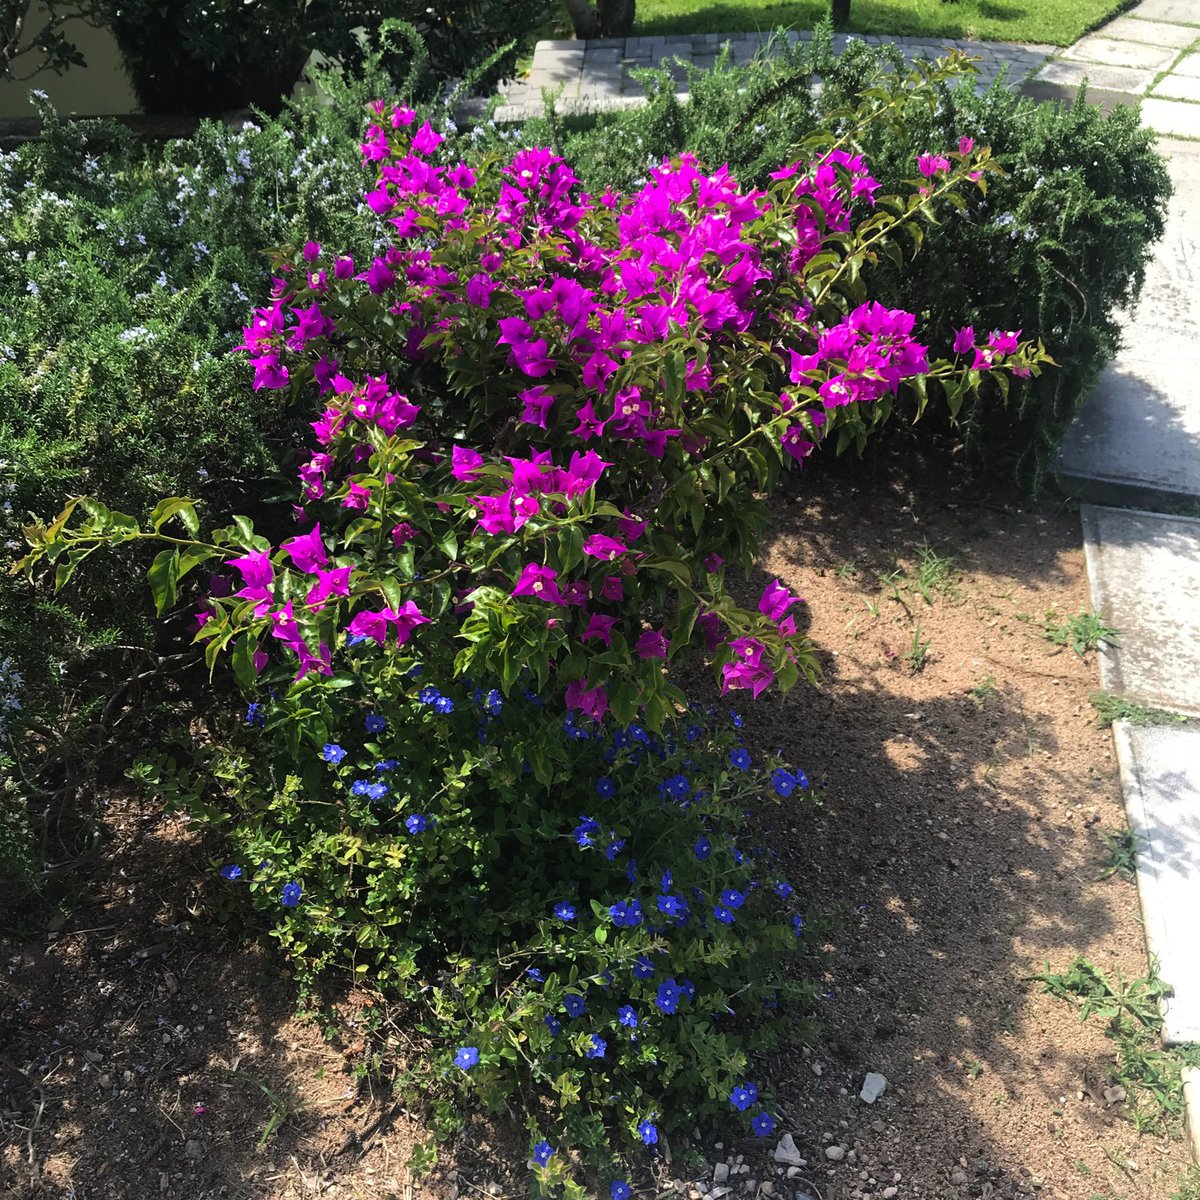 Lovely colorful flowers & foliage all over #Bermuda https://t.co/oPHPCMZ5VT